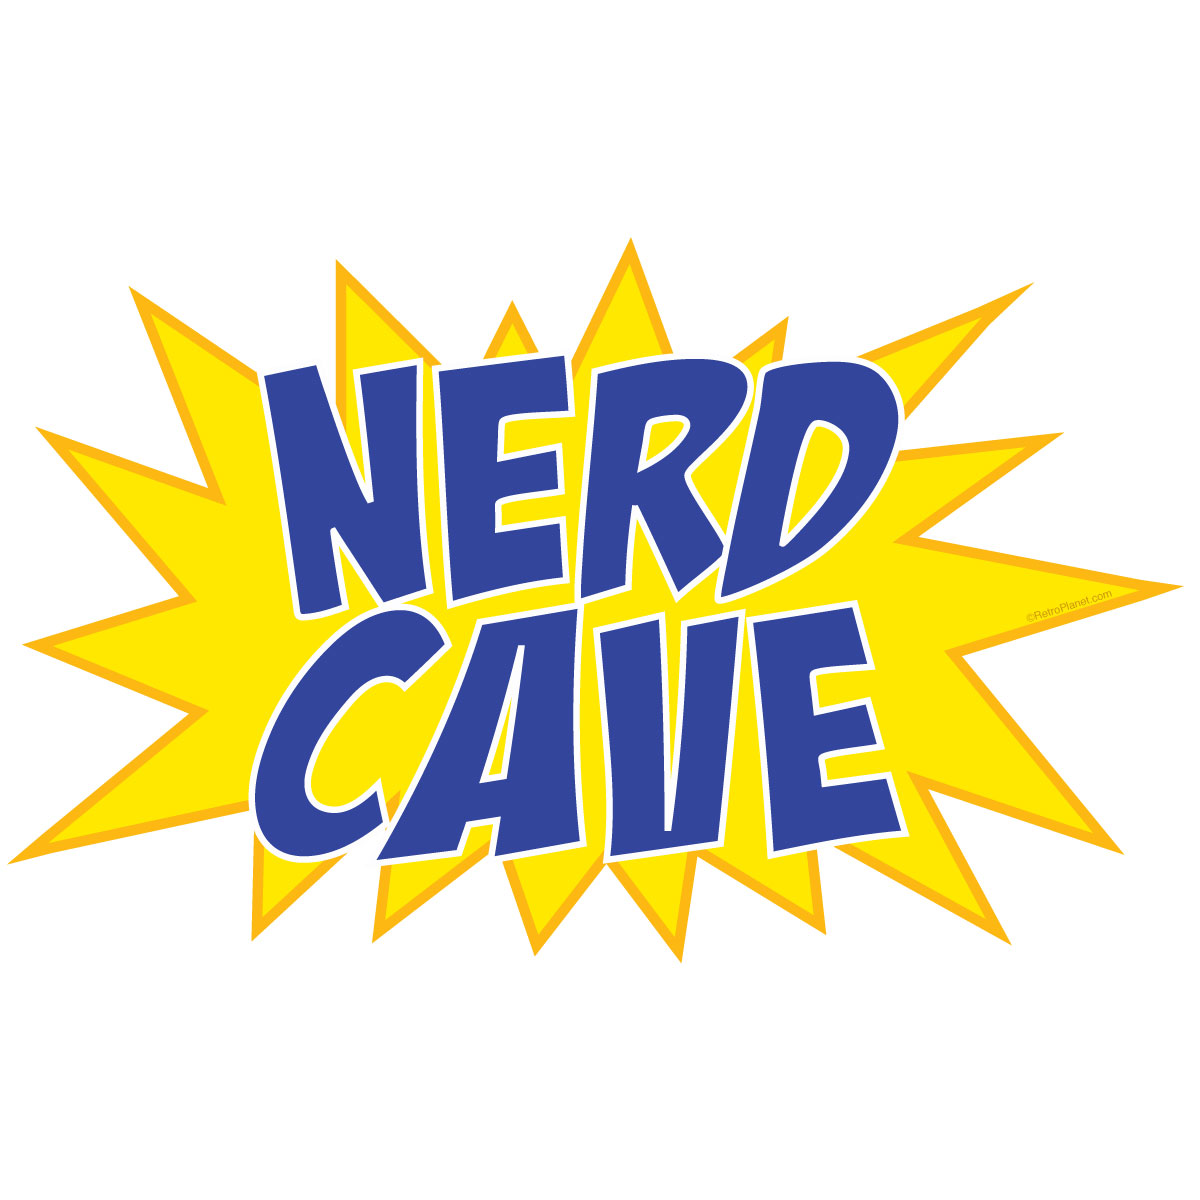 Nerd Cave Comic Book Burst Wall Decal | Wall Decor for Geeks ...